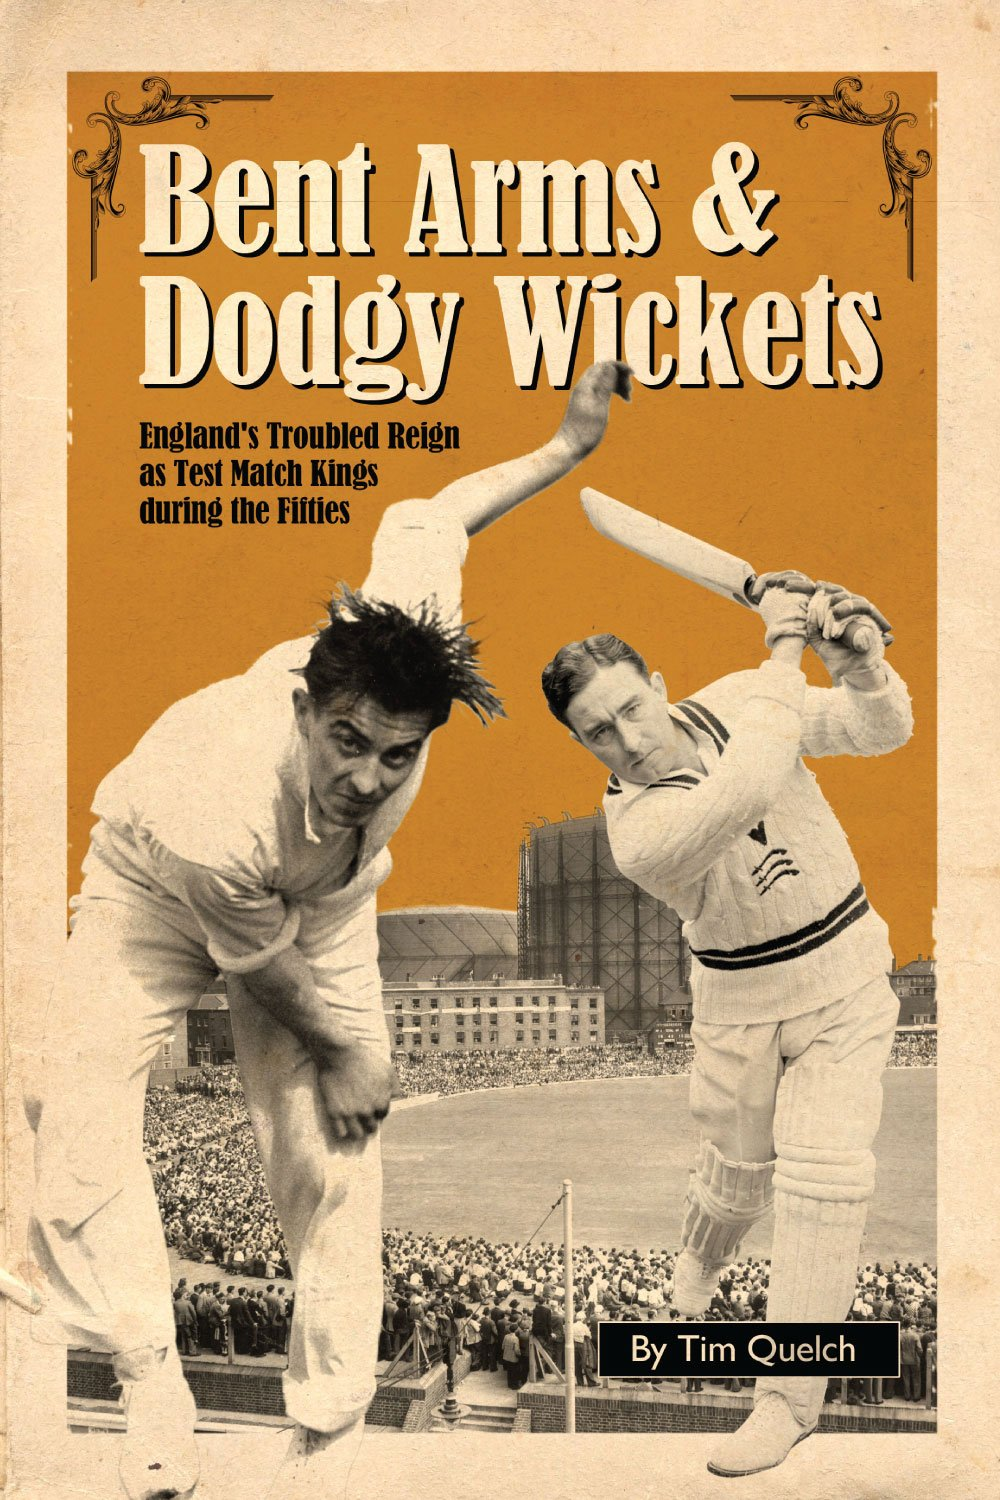 Image OfBent Arms & Dodgy Wickets: England's Troubled Reign As Test Match Kings During The Fifties